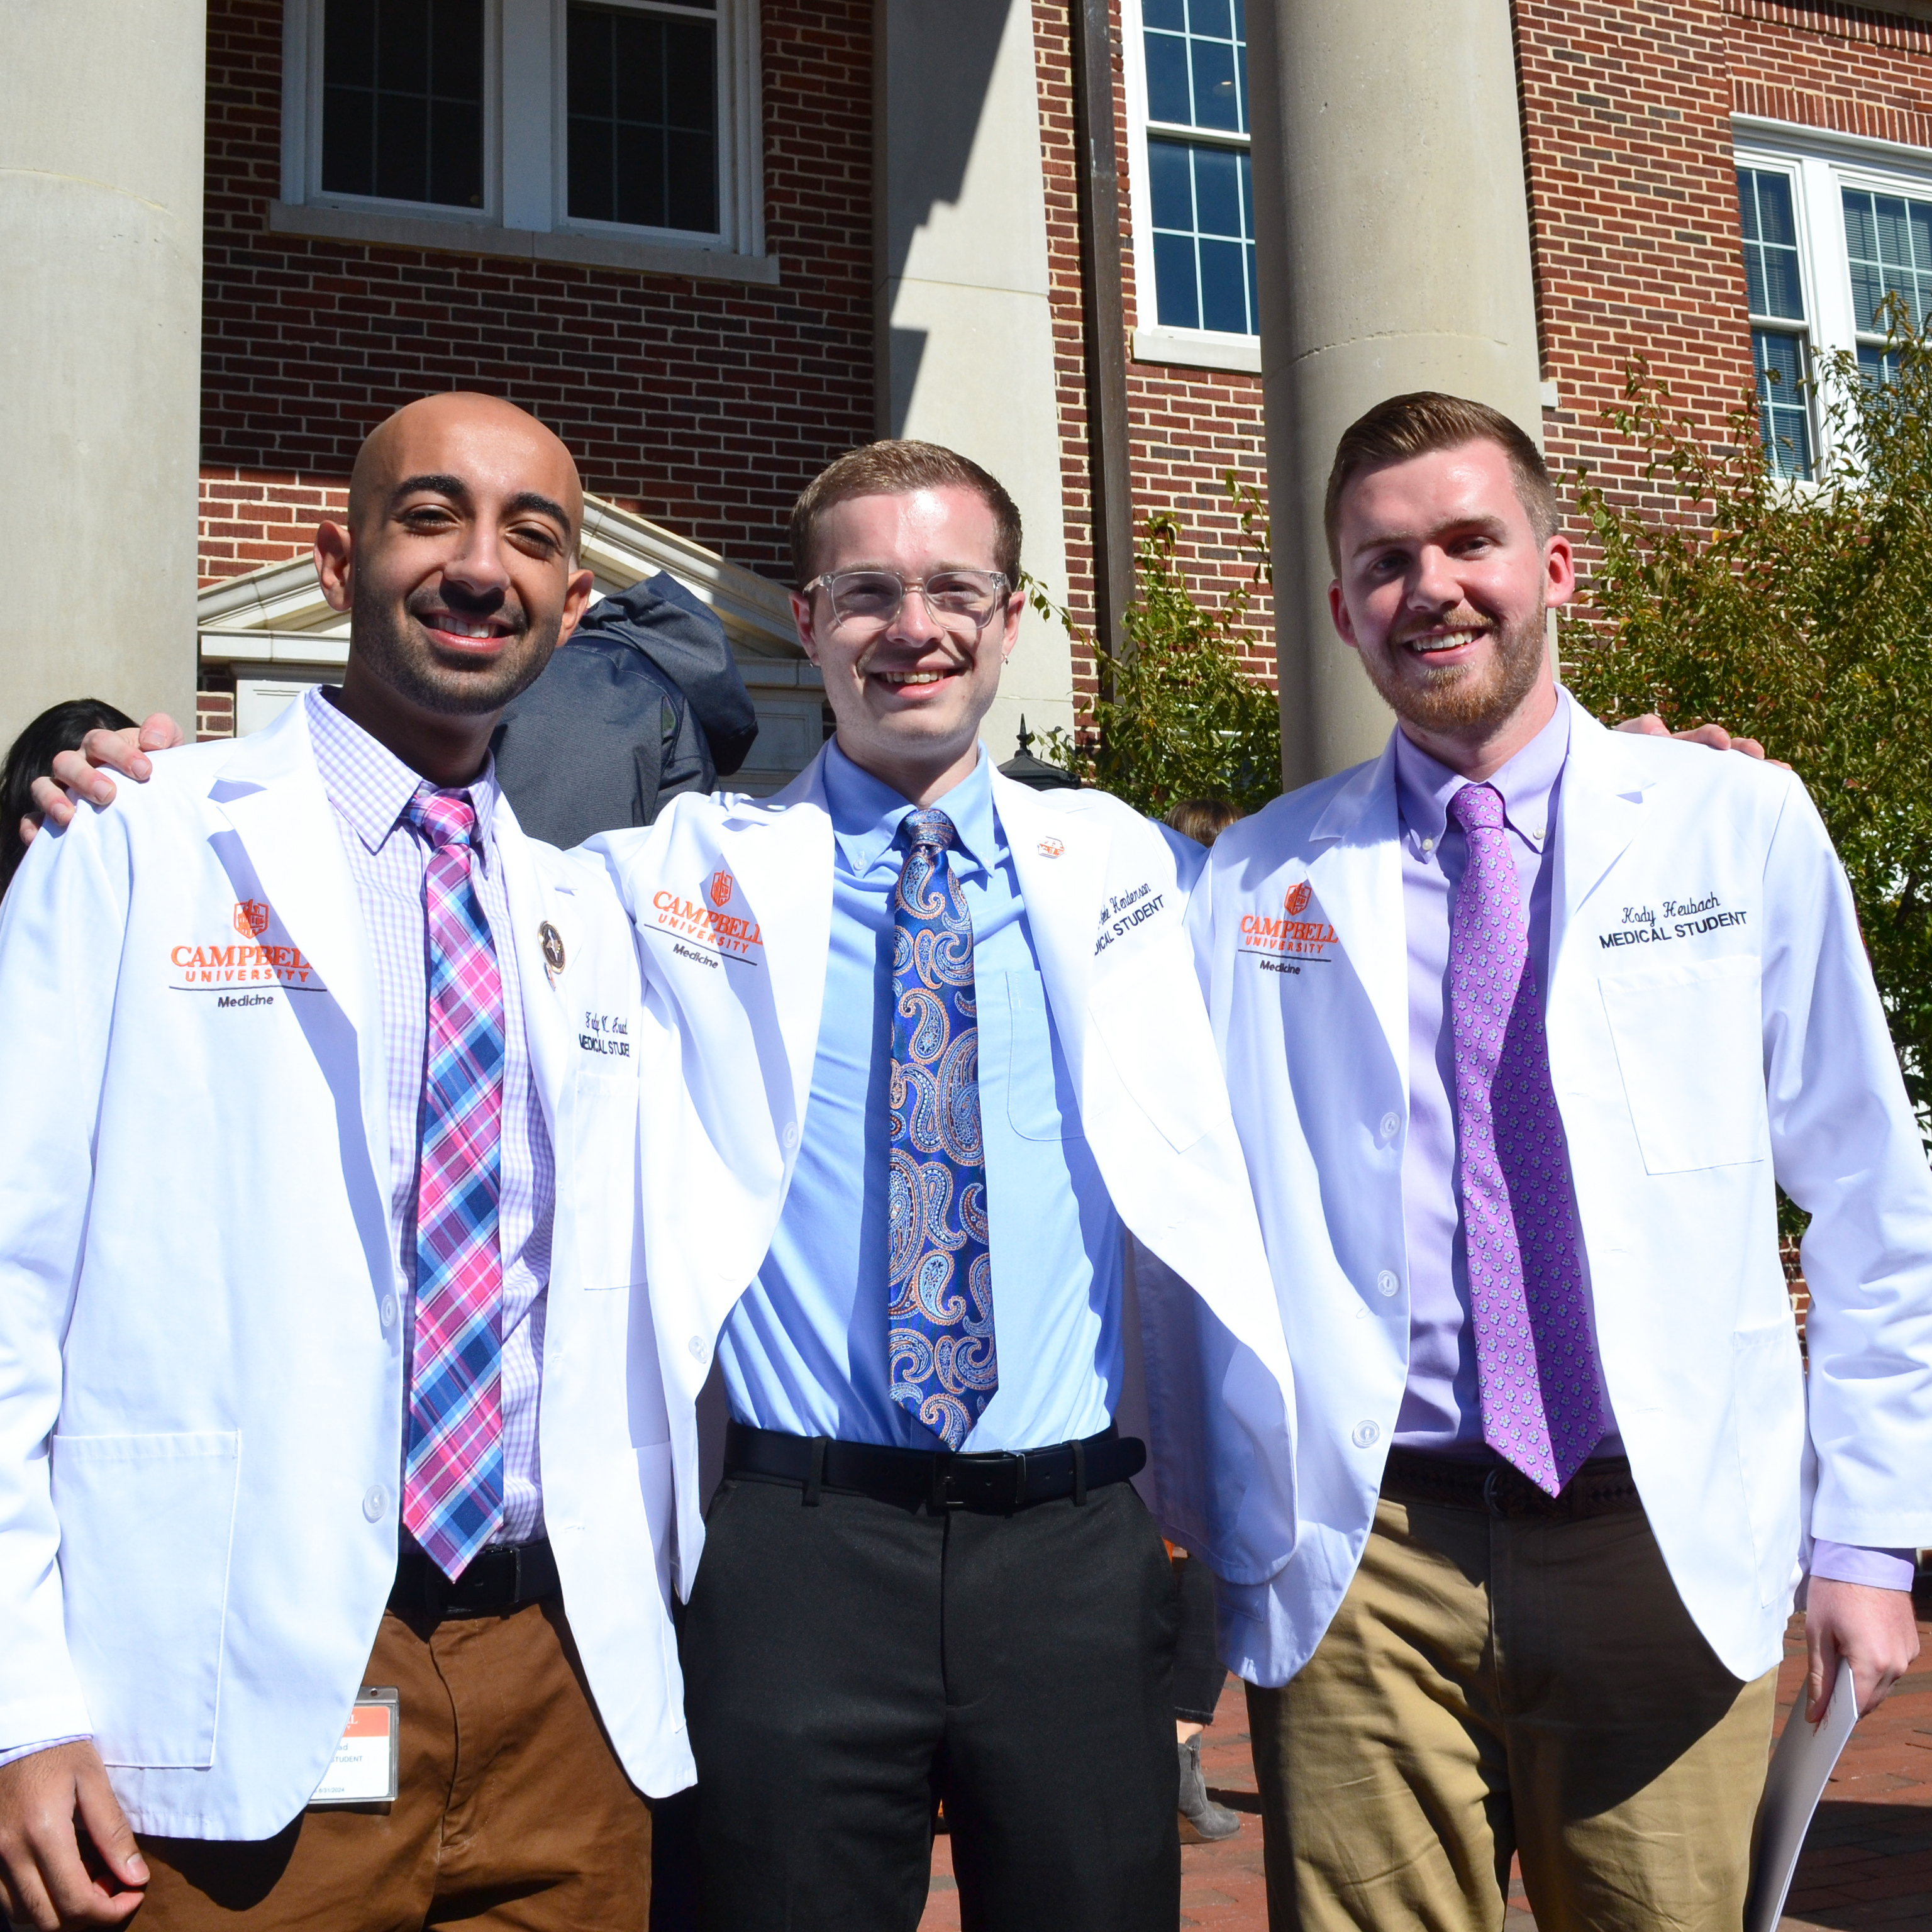 Male students in white coats